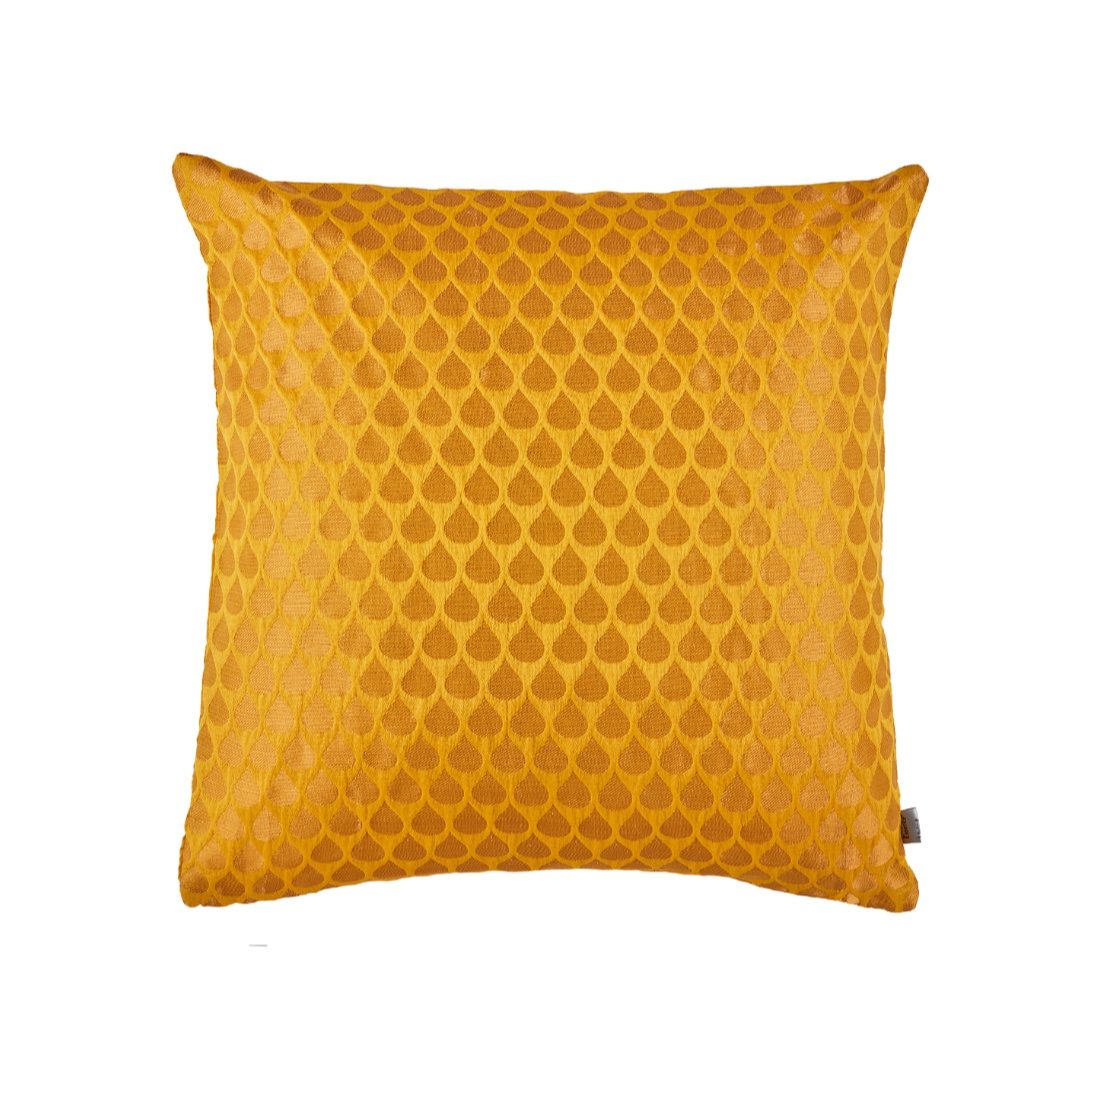 Drop Cushion Cover Yellow Polyester Cushion Covers in Yellow Colour by Living Essence